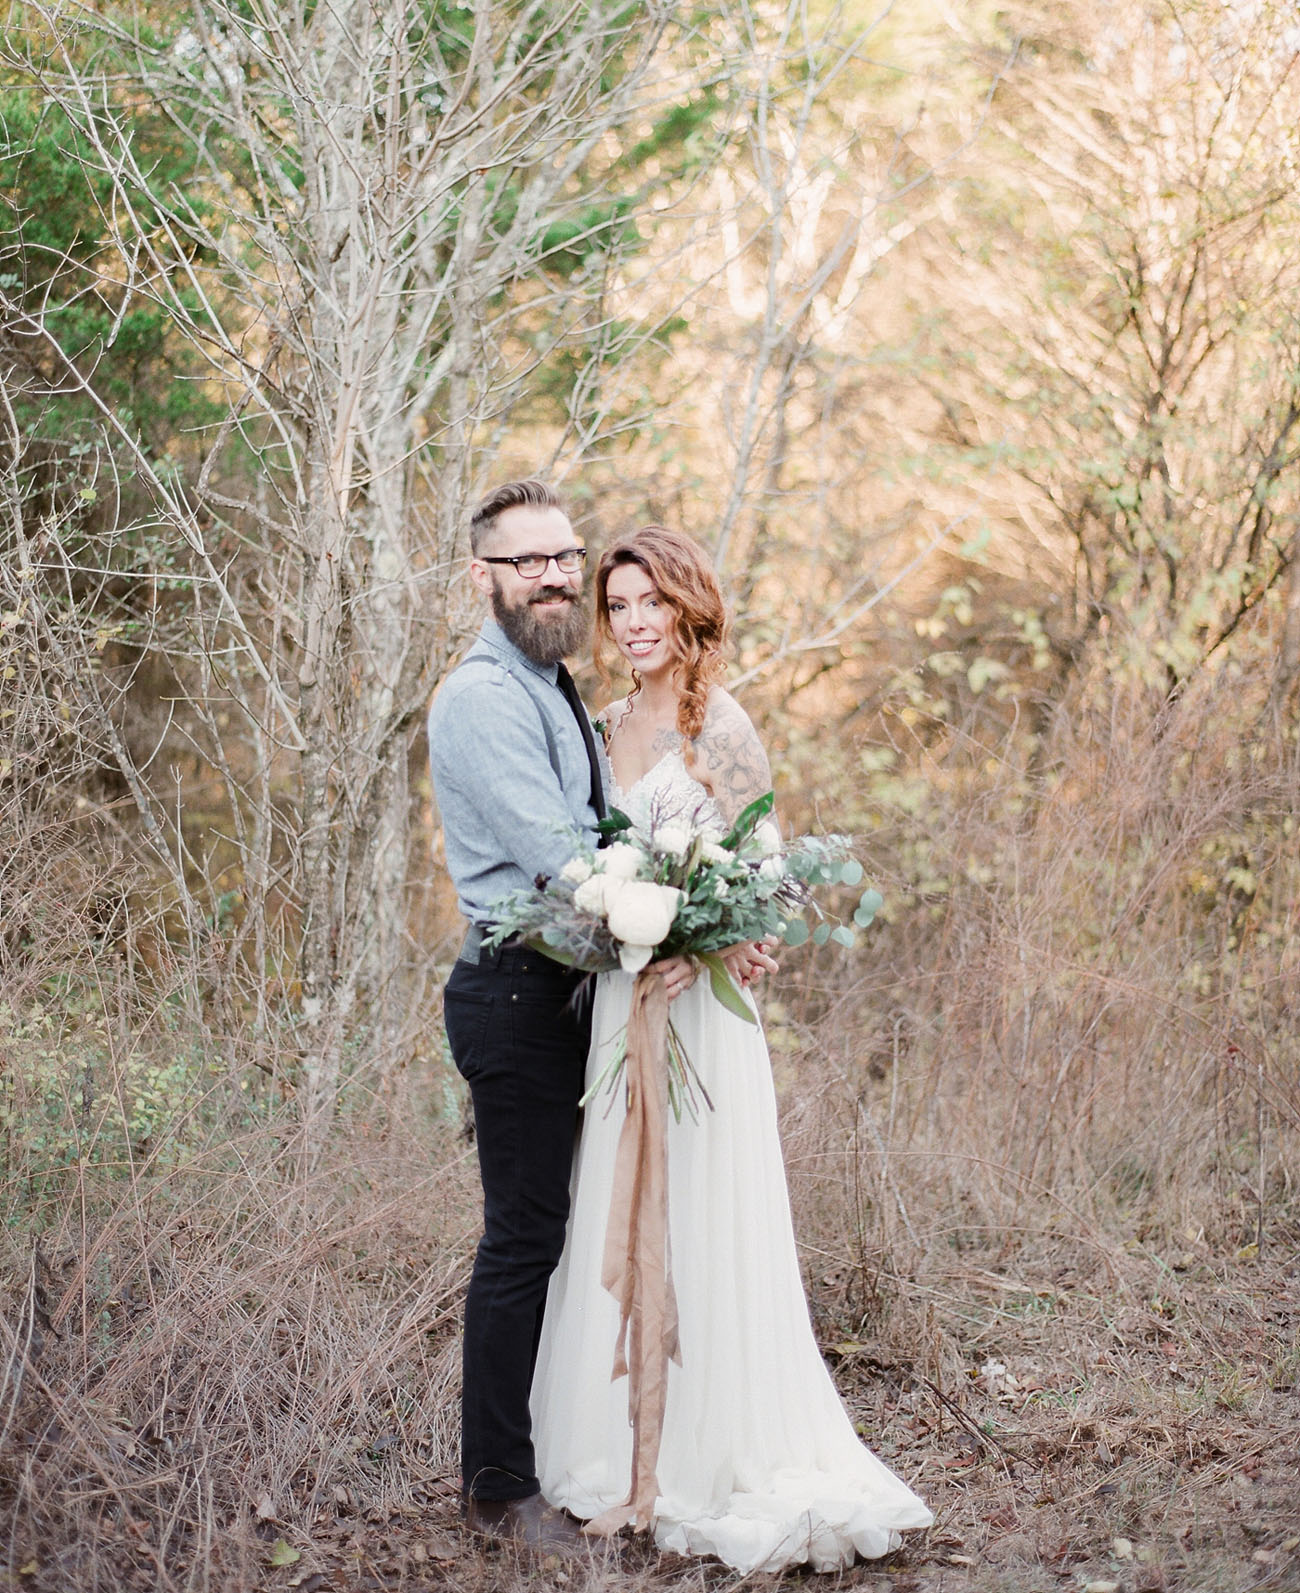 352af2b2b0be Edgy Bohemian Vow Renewal in the Woods - Green Wedding Shoes